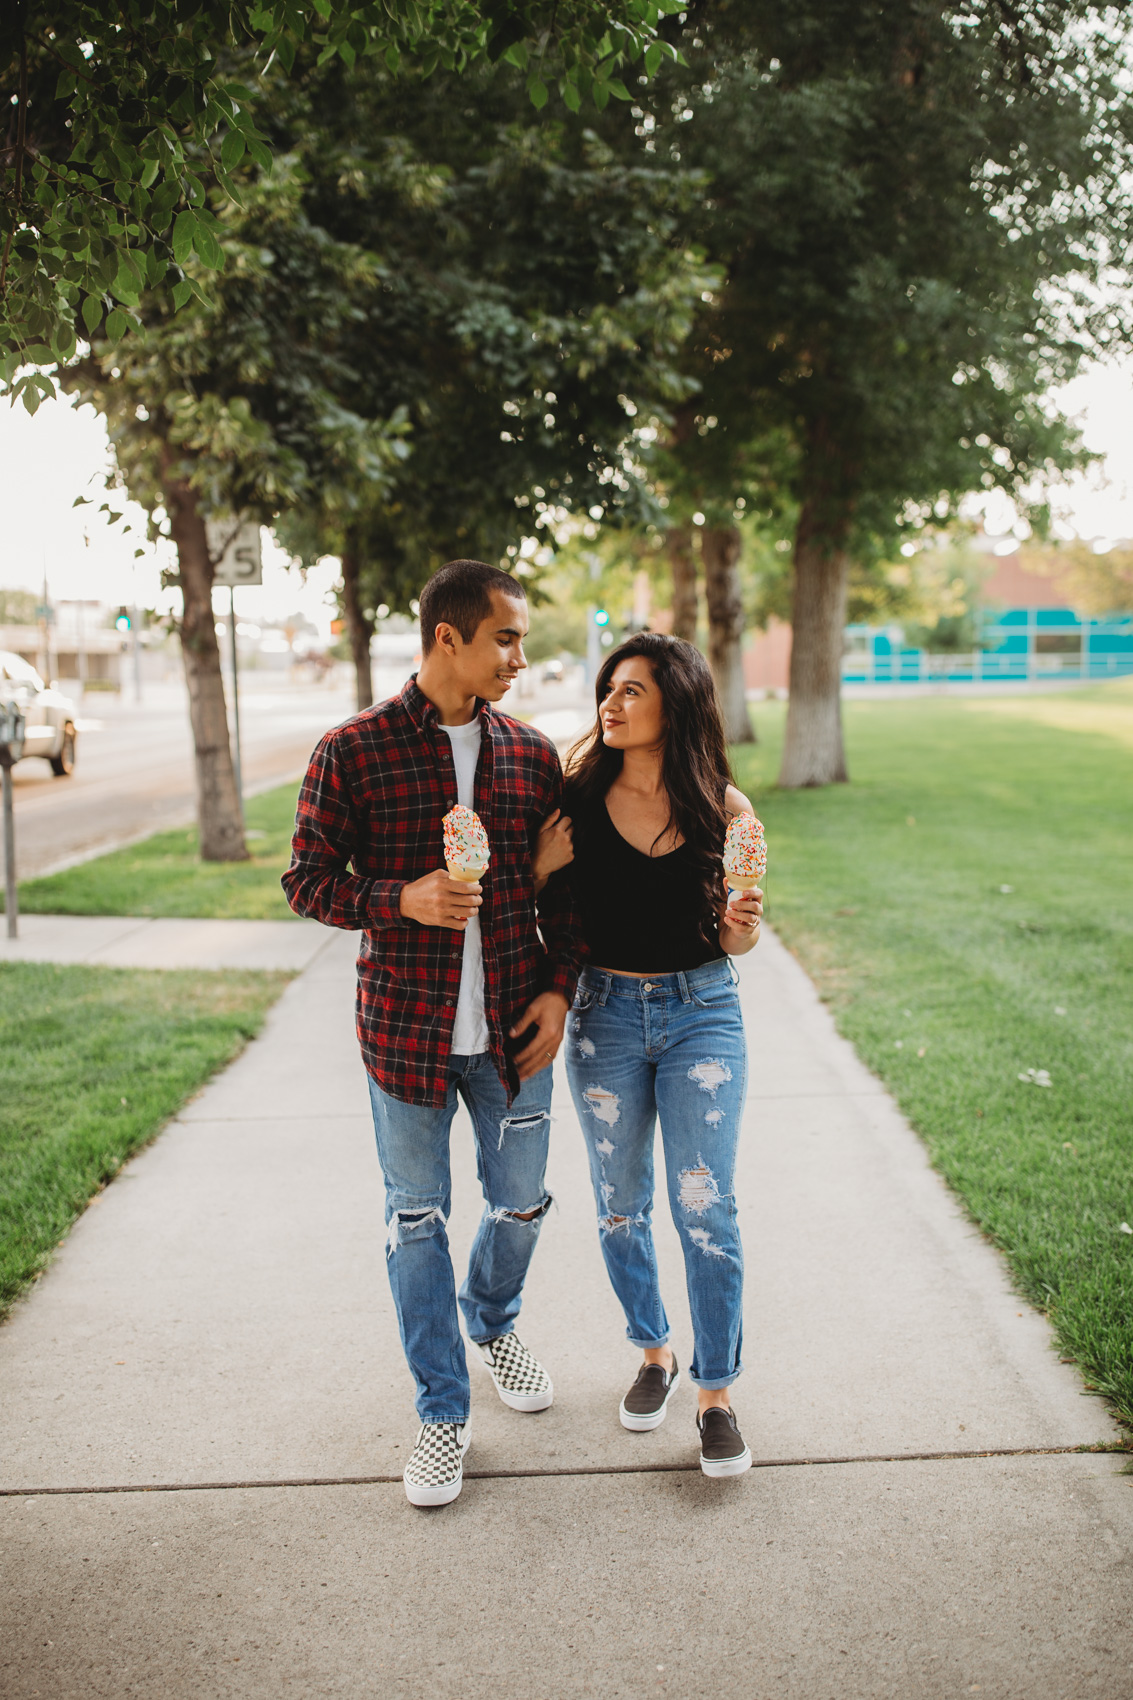 downtown-great-falls-montana-couples-session-1.jpg